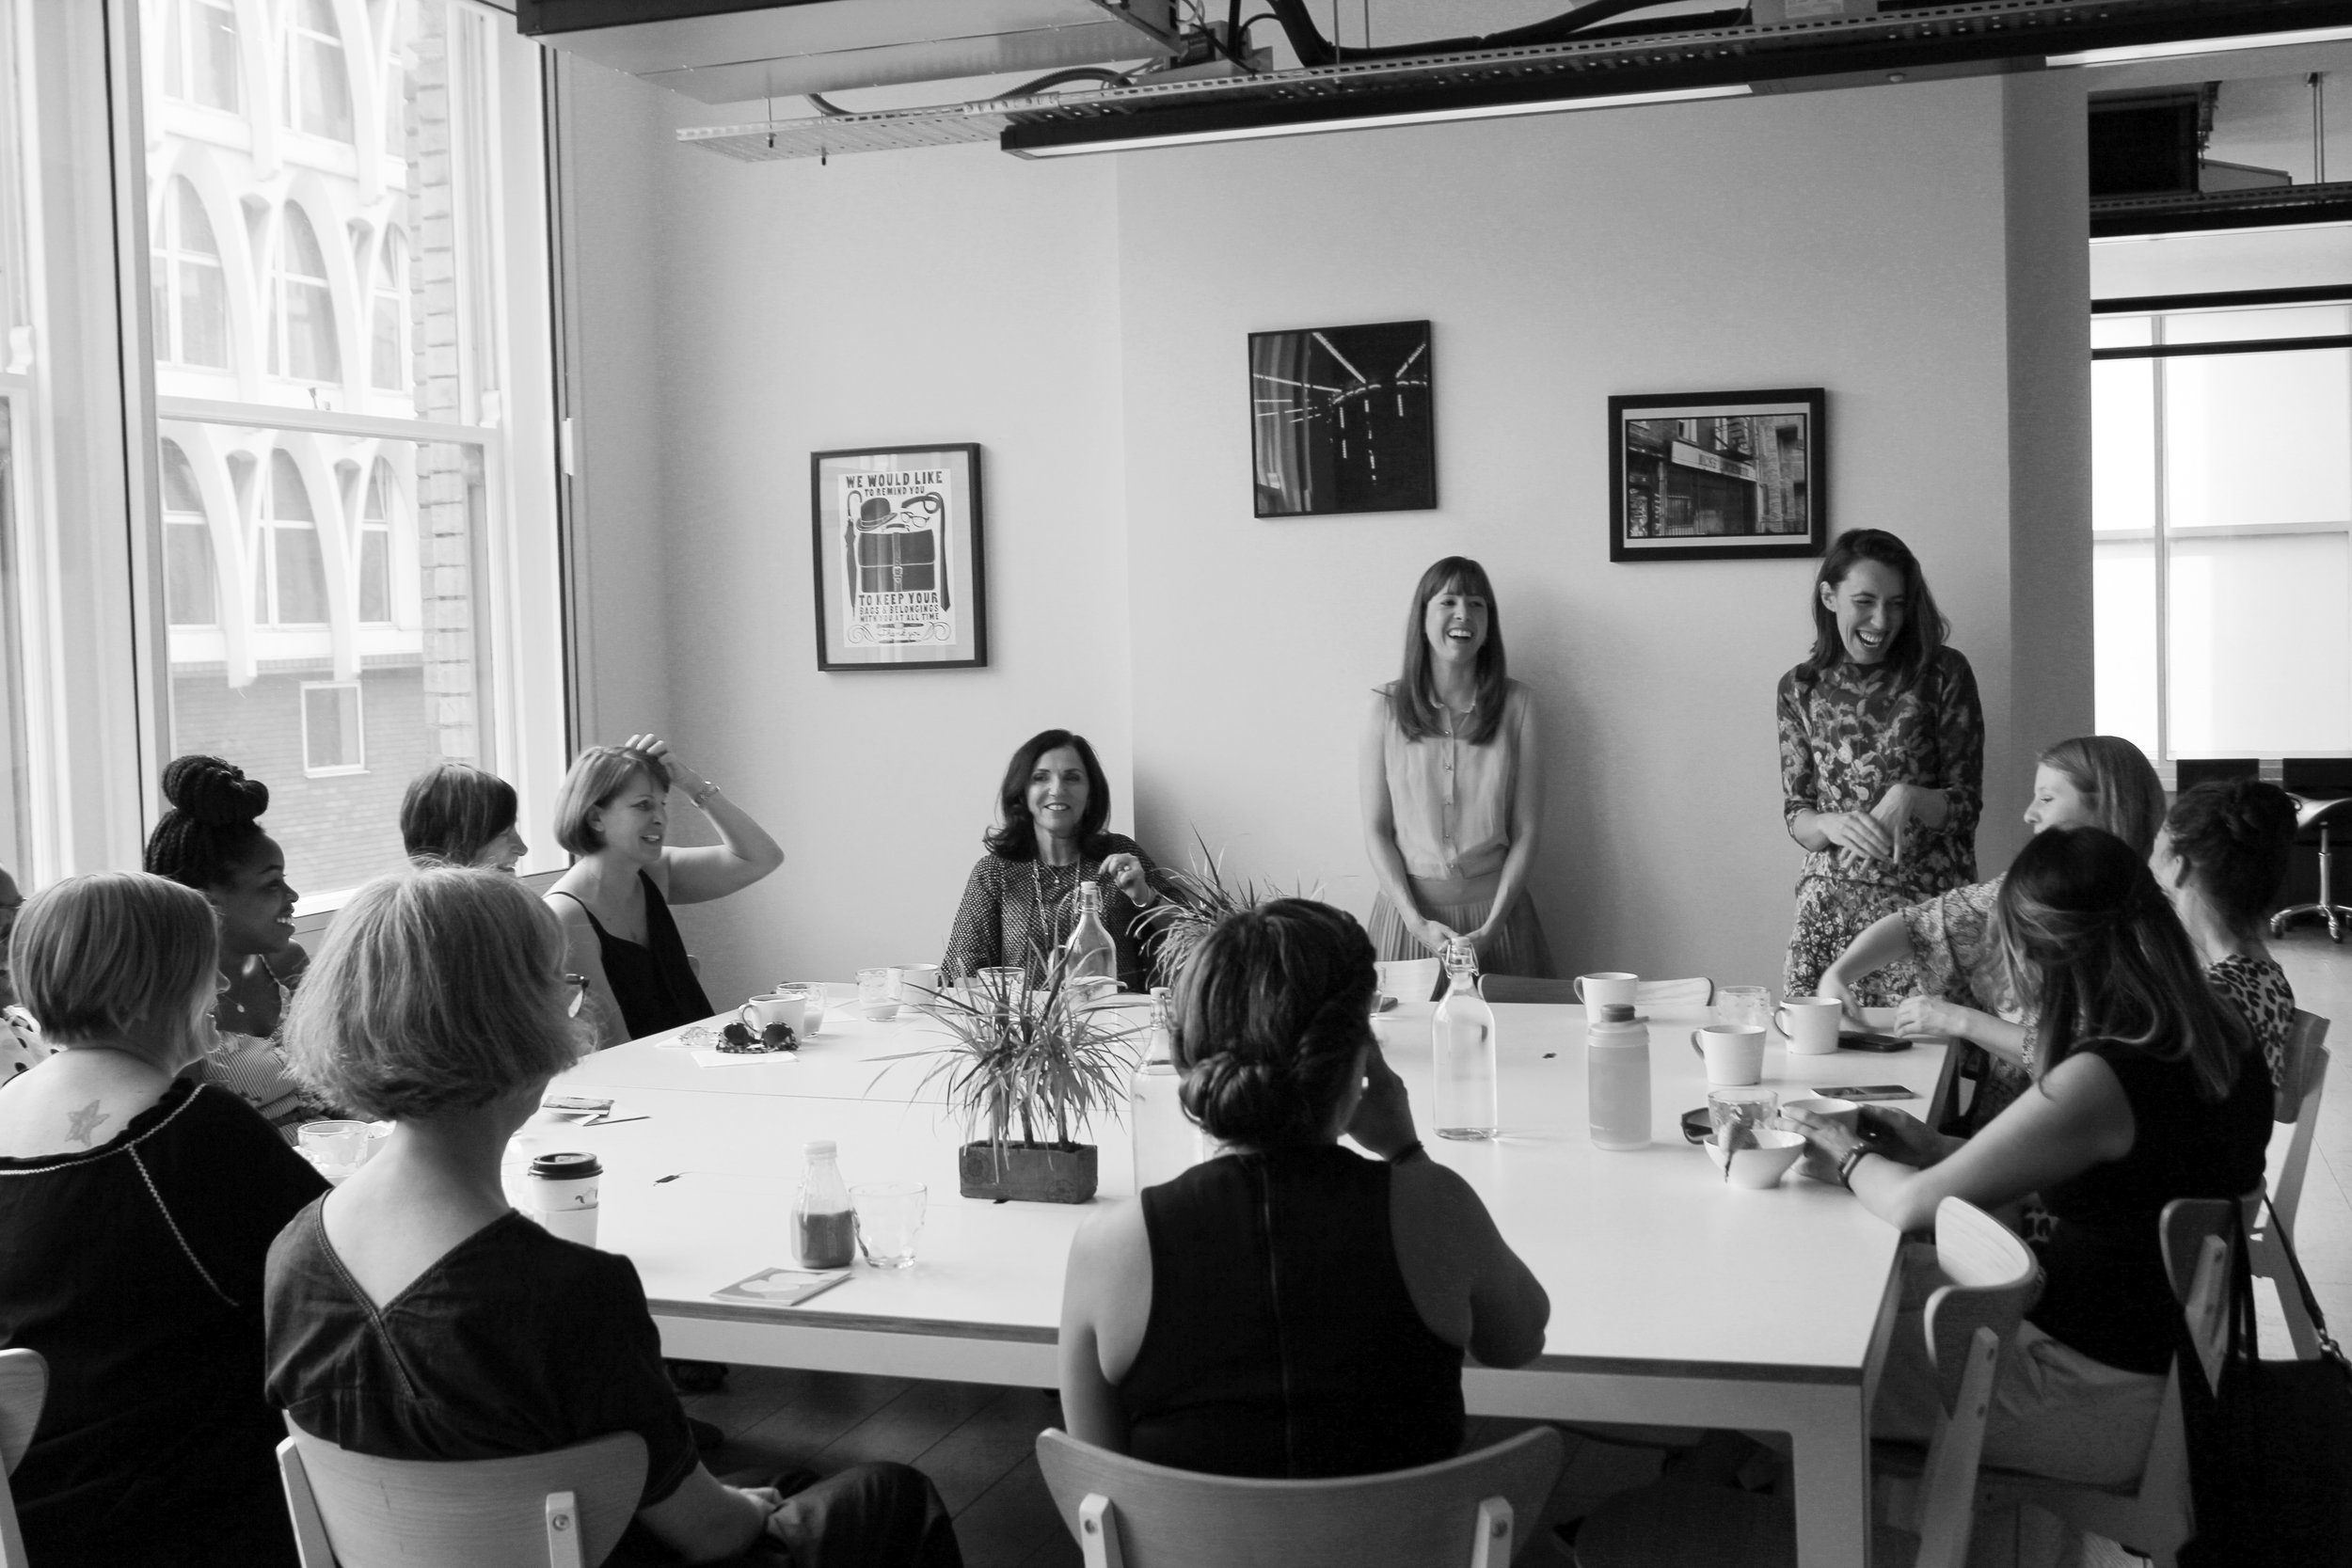 BUSINESS BREAKFAST - We had great success with bringing together creative entrepreneurs and freelancers to network, share experiences and chill.